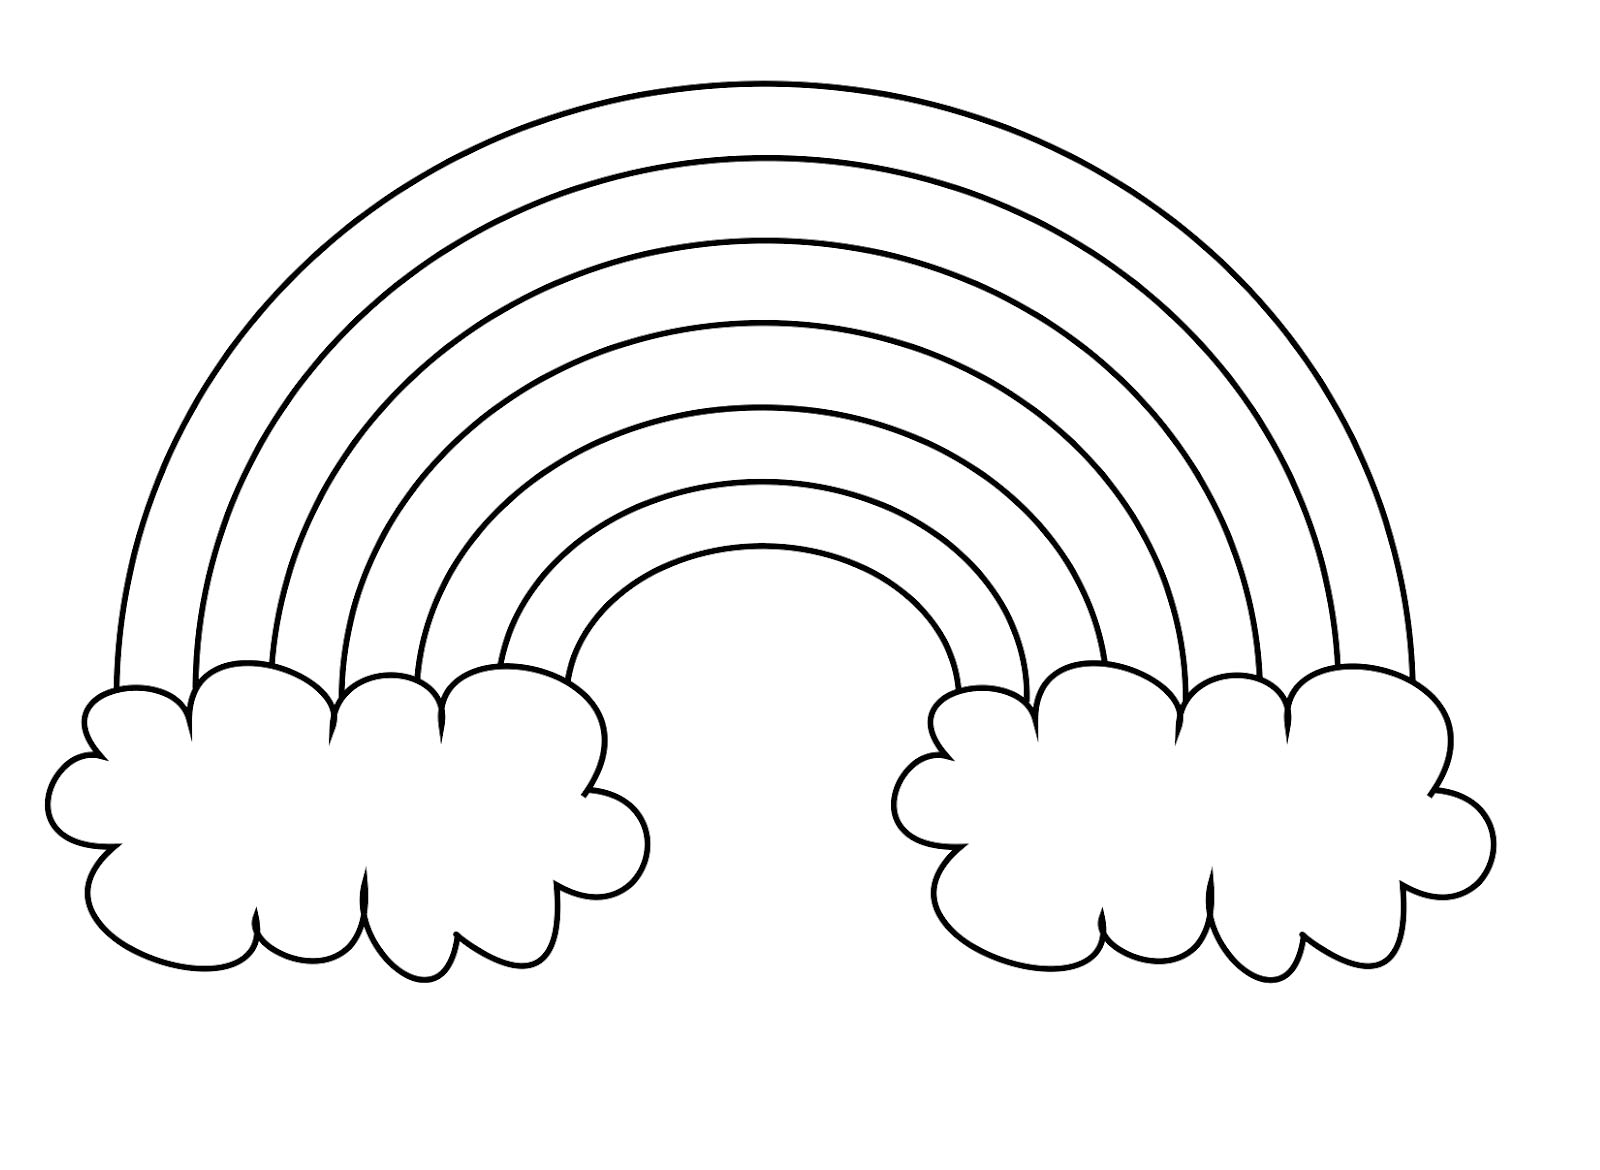 Rainbow coloring pages only coloring pages for Coloring page rainbow